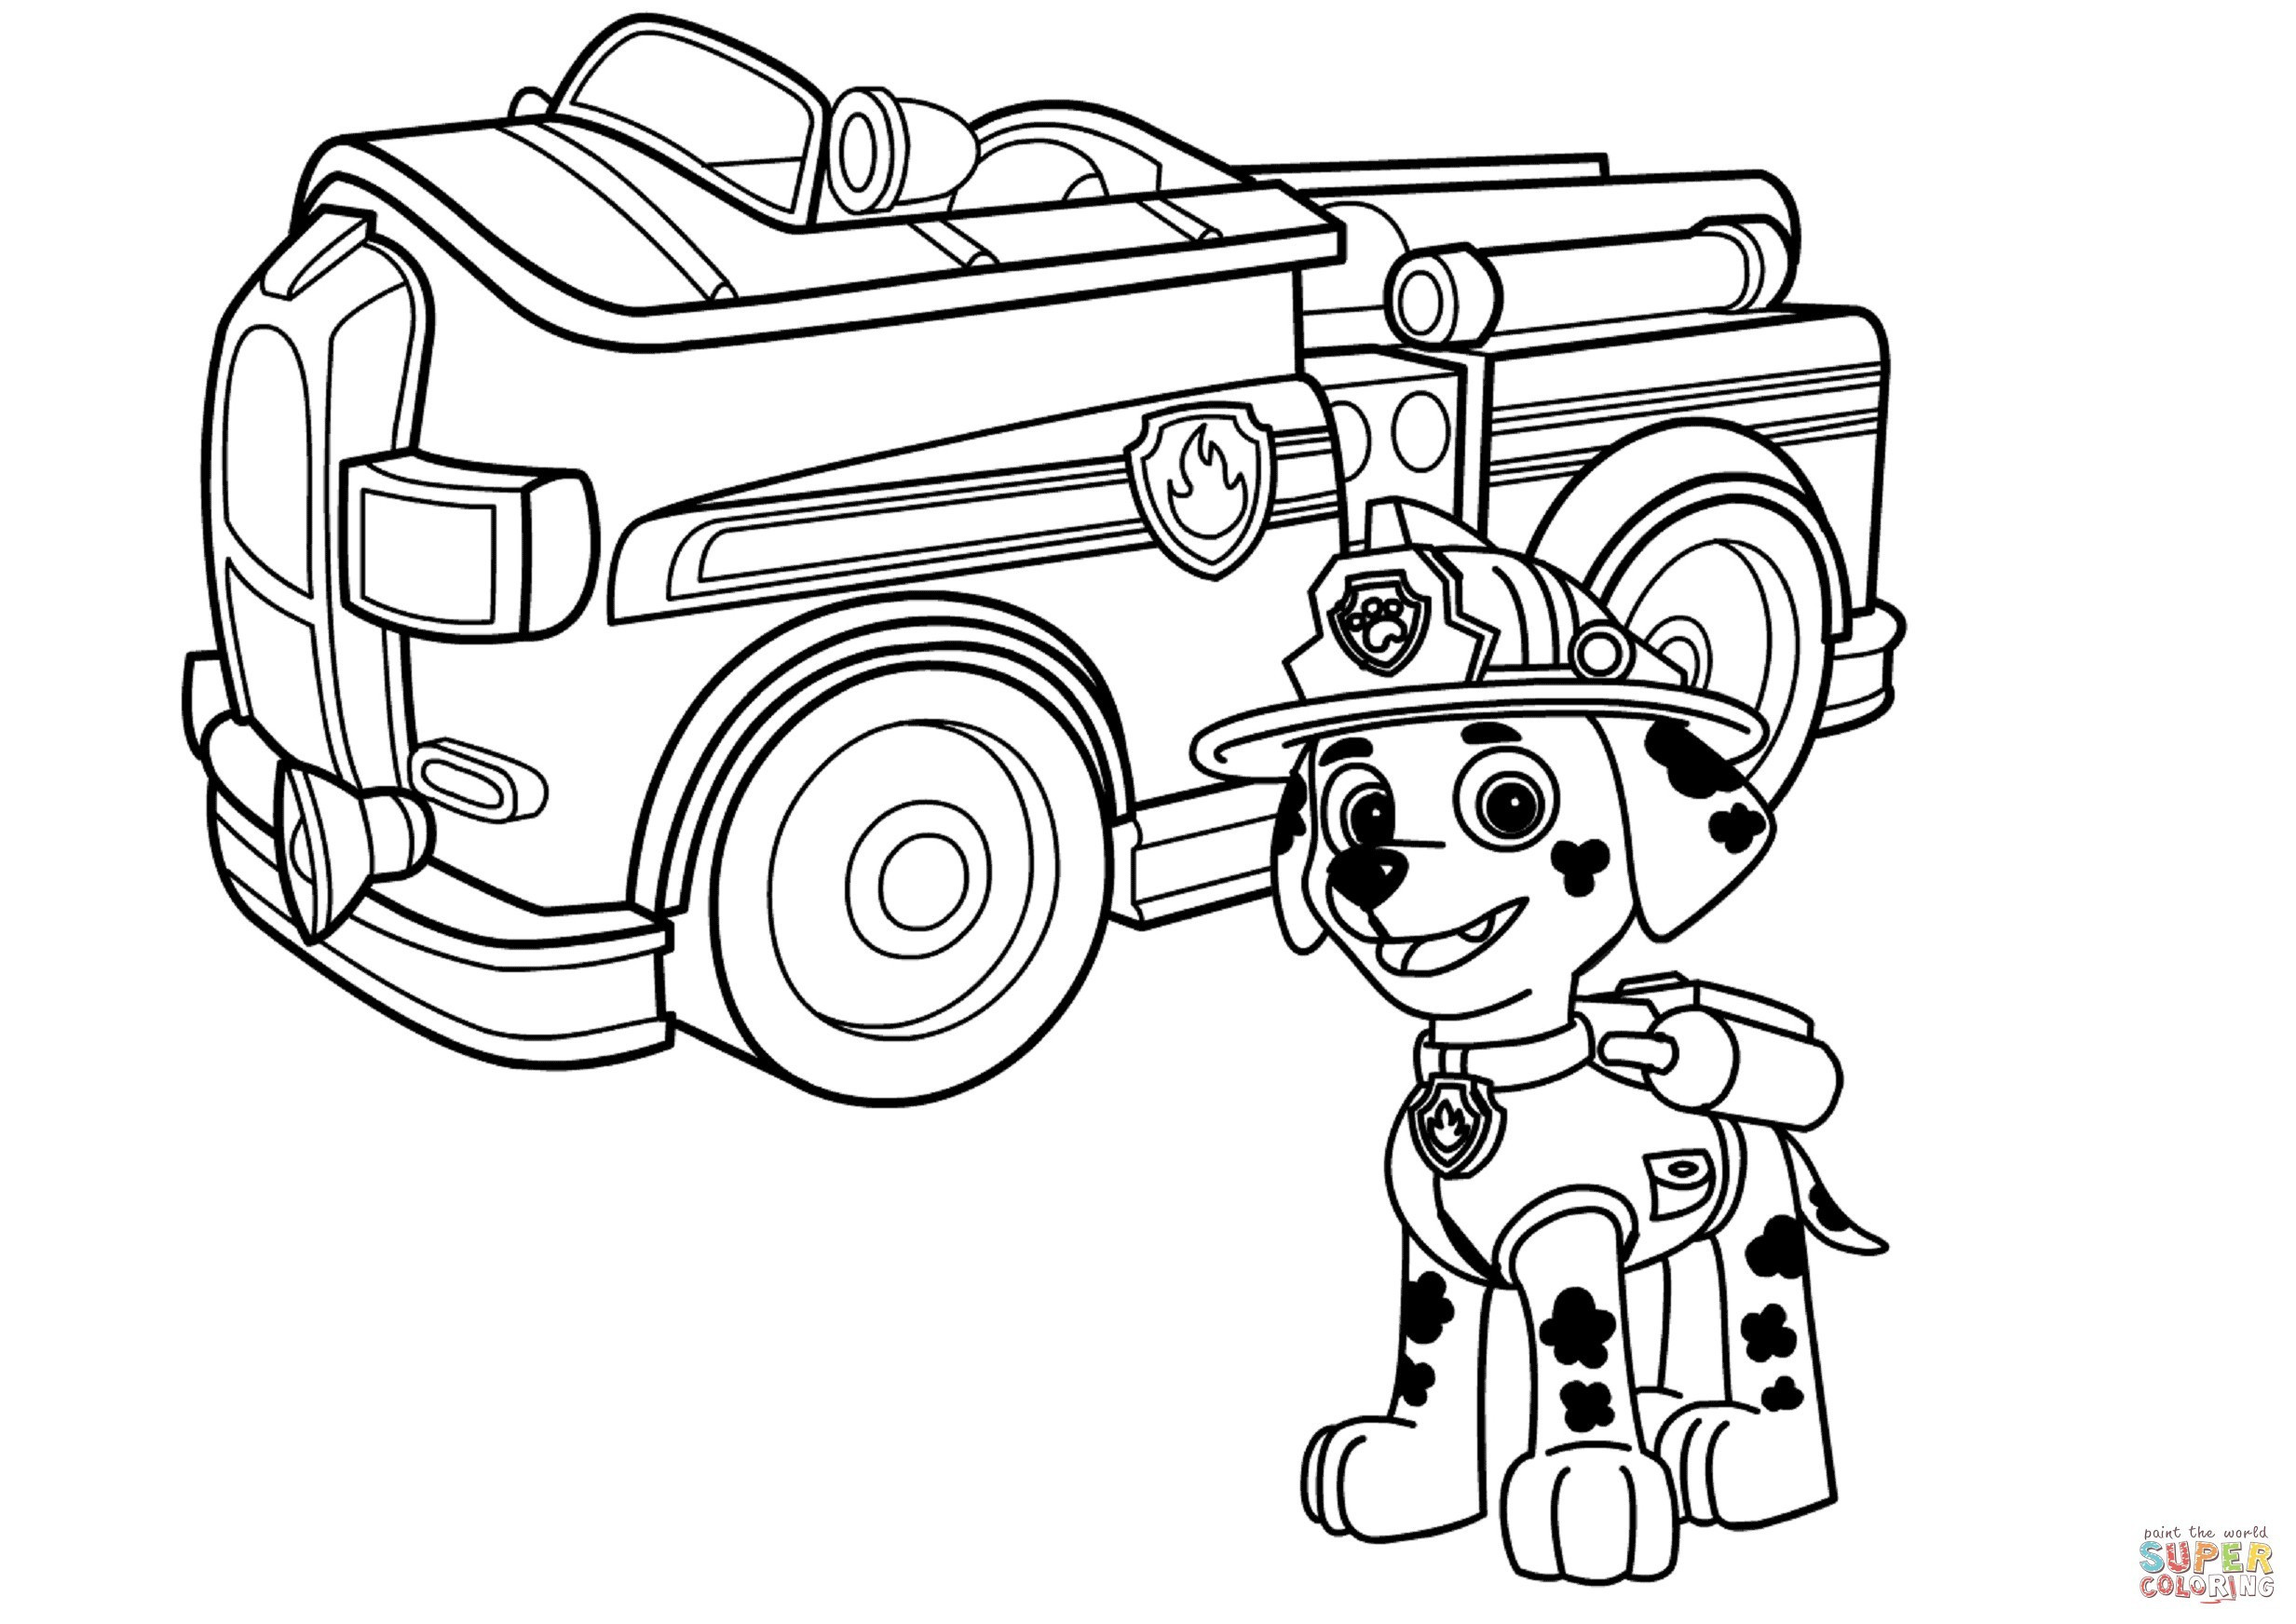 Paw Patrol Ausmalbilder Tracker Neu Inspirational Marshall Paw Patrol Coloring Page Coloring Pages Galerie